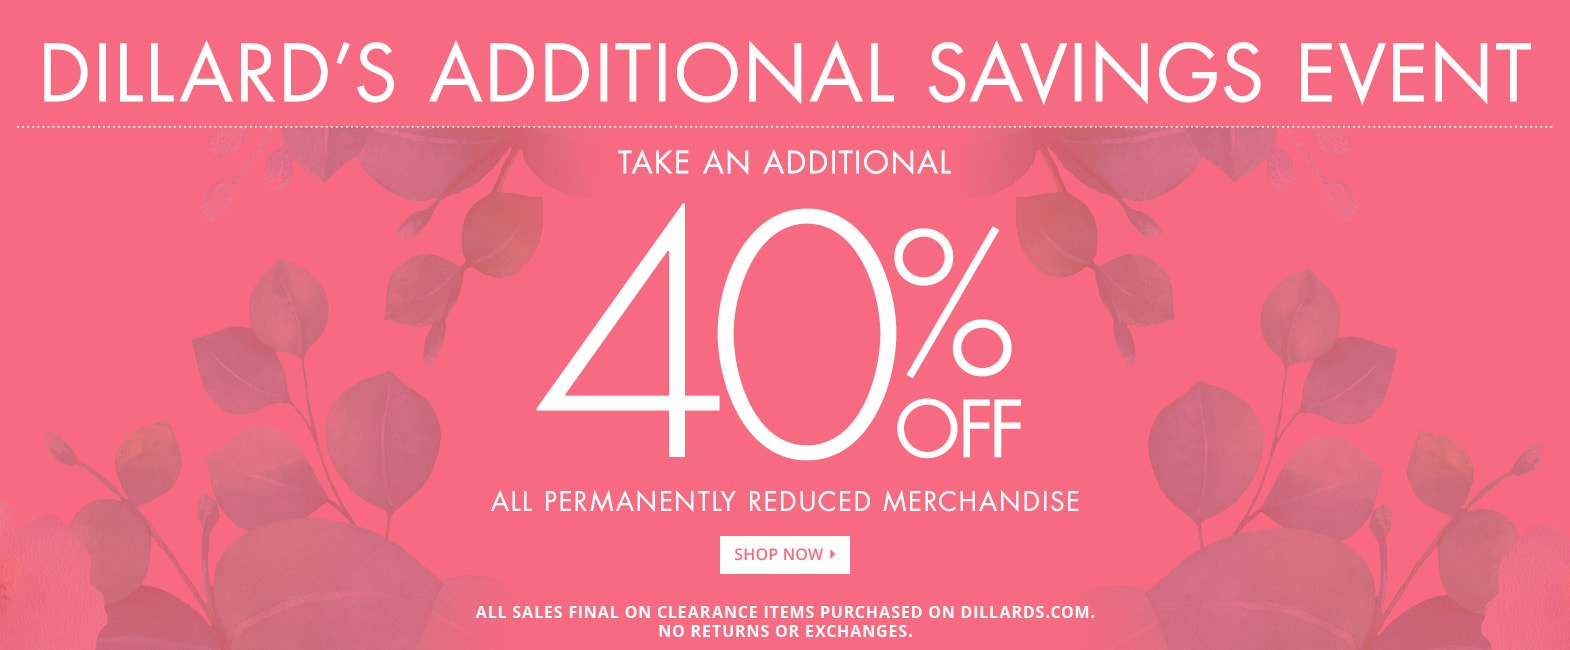 Take an additional 40% off permanantly reduced merchandse on Dillards.com